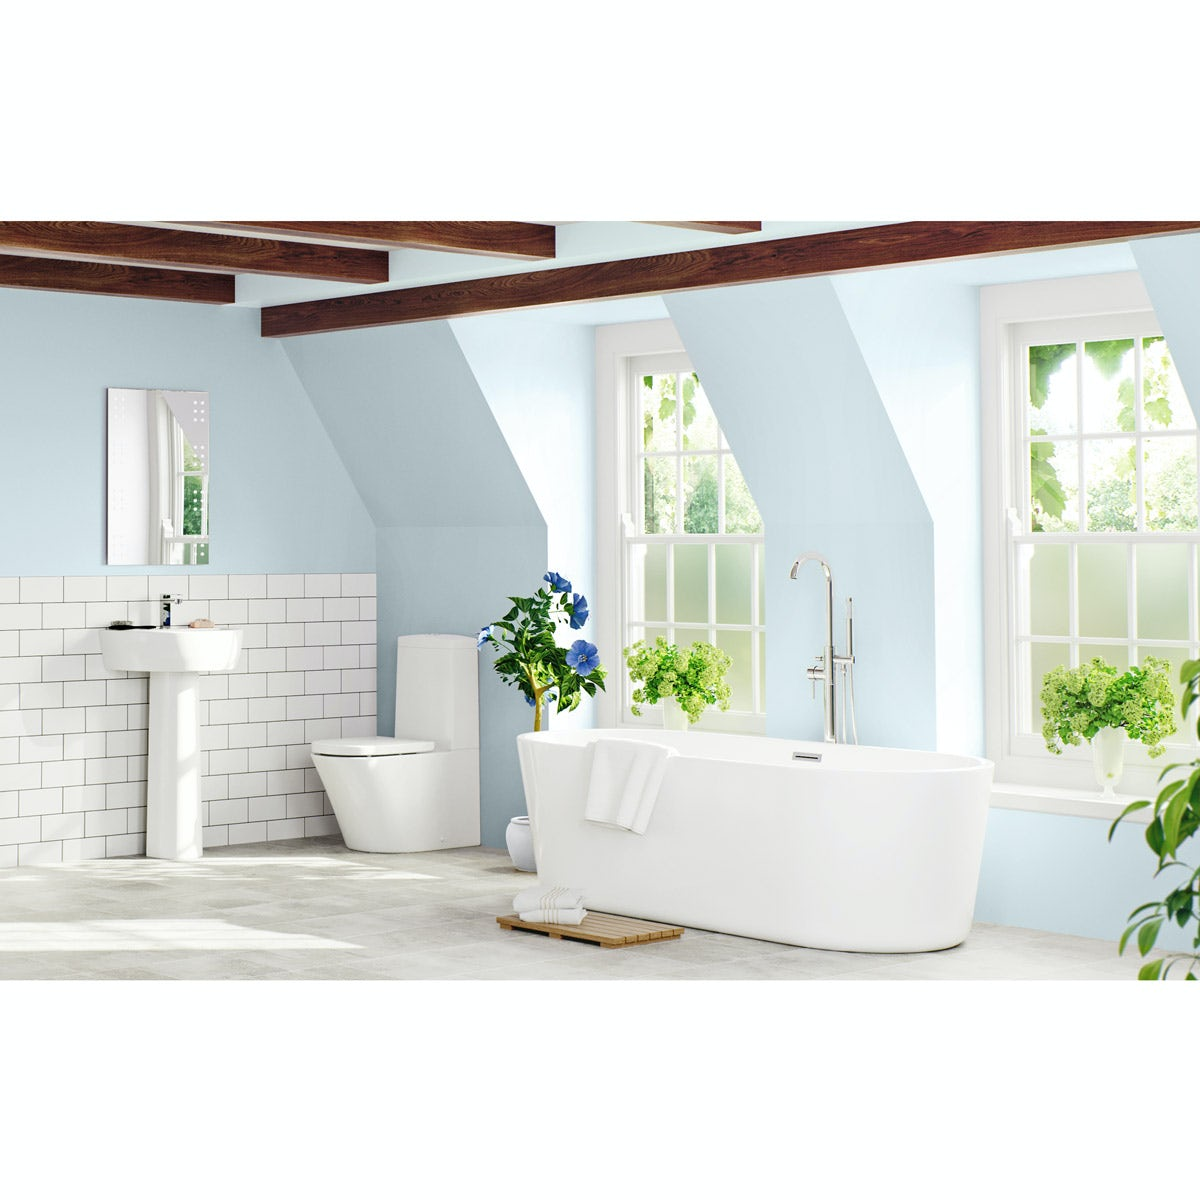 Mode Tate luxury bathroom suite with freestanding bath